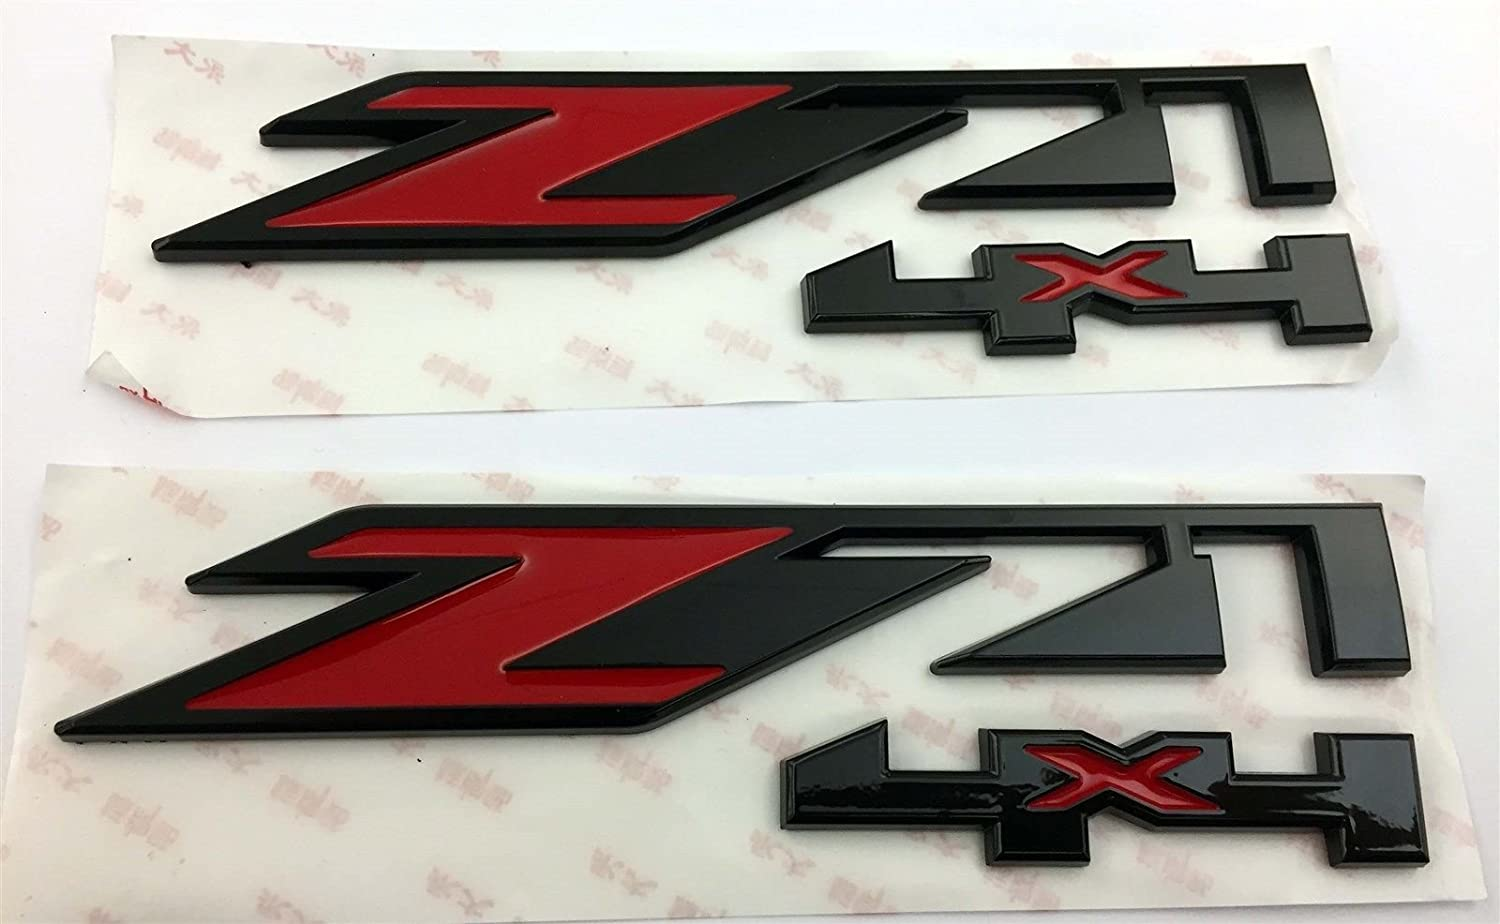 BLACK Exotic Store Pair 2 Pieces Fit for CHEVY GMC Silverado Sierra Tahoe Suburban TRUCK Z71 4X4 EMBLEMS RED Silver 1500 2500 3500 Decal BLACK RED 7 X 2 Badges